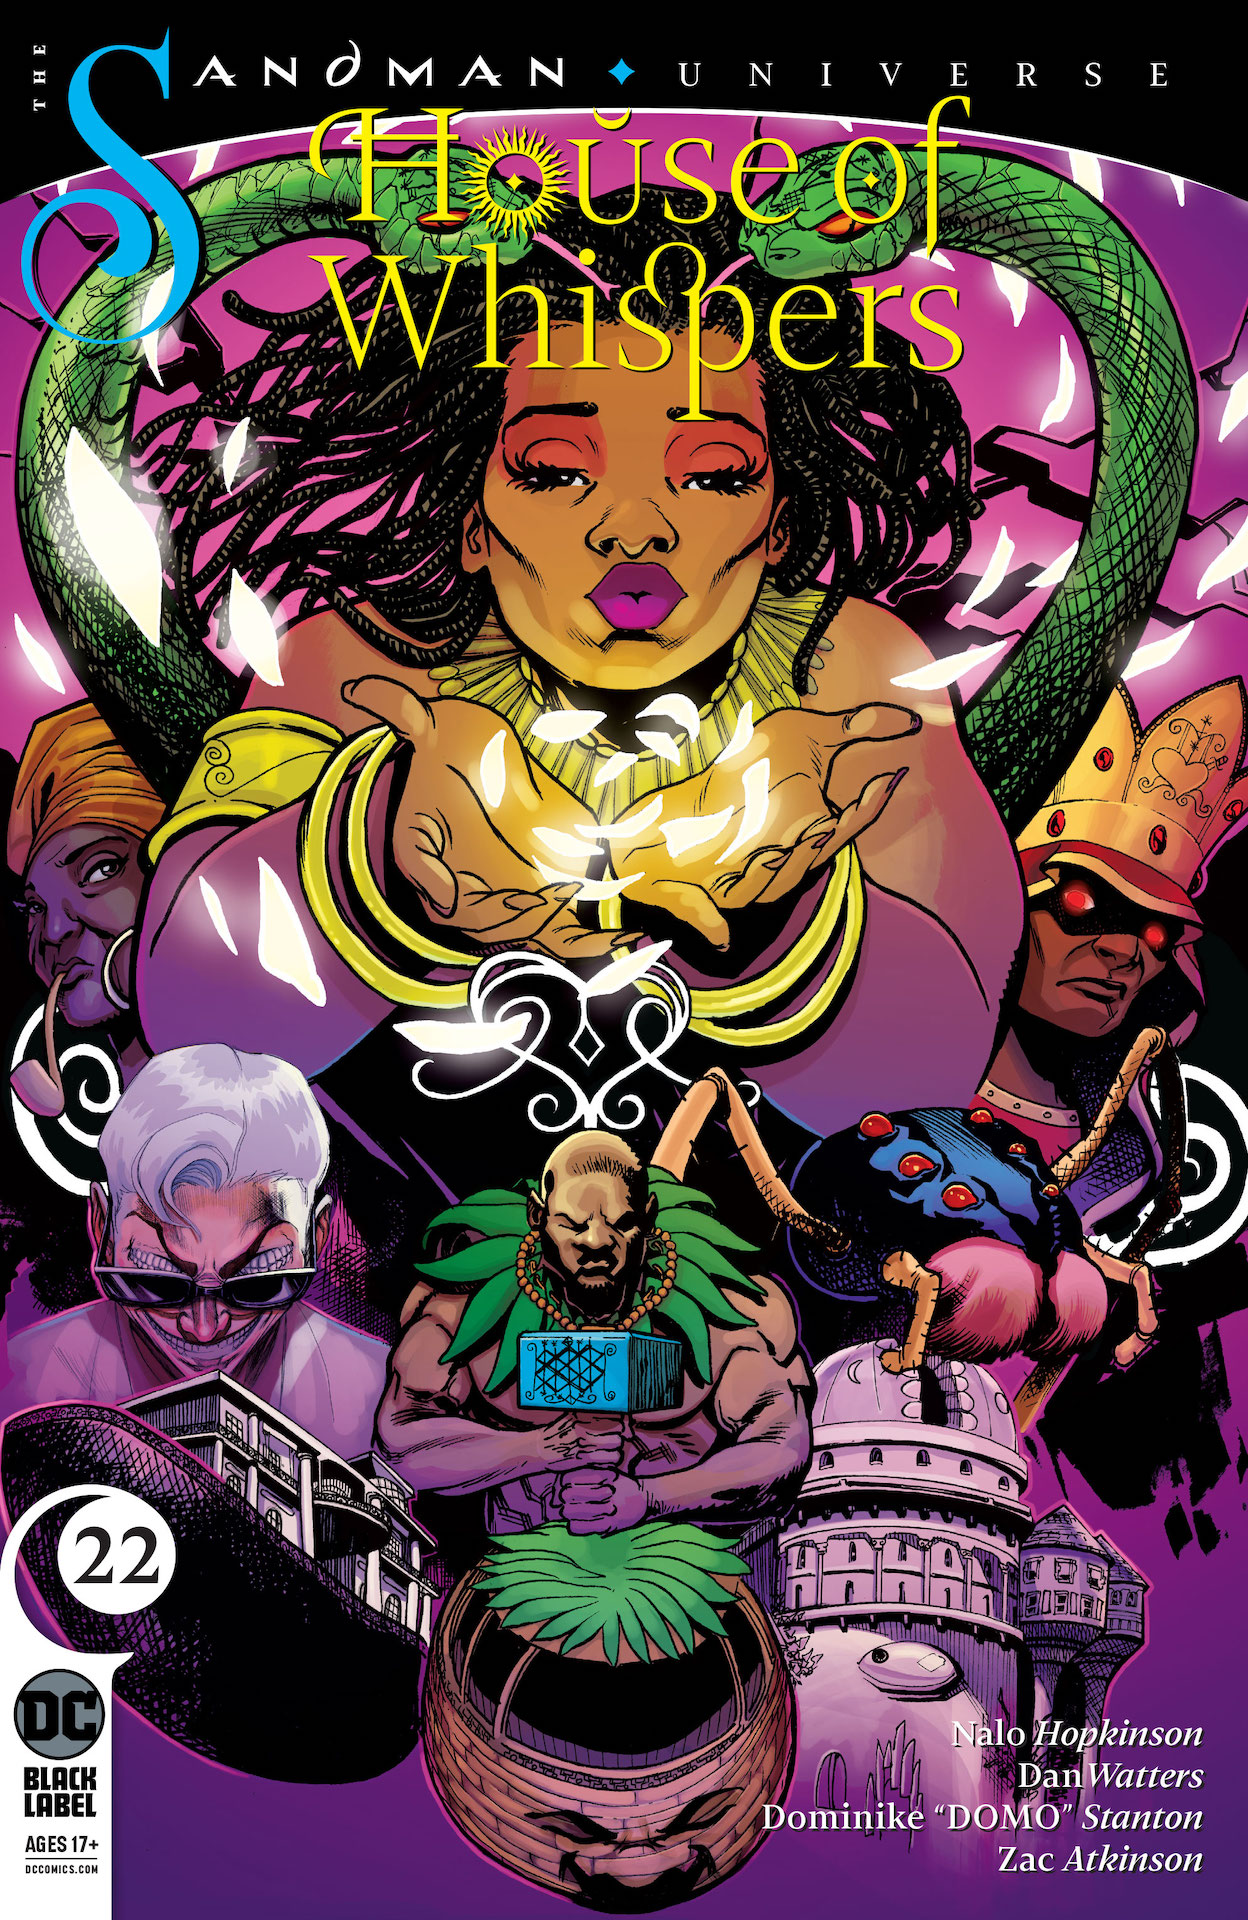 "The time has come for both Erzulie and Poquita to take back the power of their twinned Houses…but Anansi will stop at nothing to keep his treasures! The sweeping epic of Erzulie's war with the trickster god comes to an explosive conclusion! House of Whispers #22 <p>Written by Nalo Hopkinson, Dan Watters Pencils Dominike ""Domo"" Stanton Inks Dominike ""Domo"" Stanton Colored by Zac Atkinson Cover by Dominike ""Domo"" Stanton Release Date: July 7, 2020</p>"